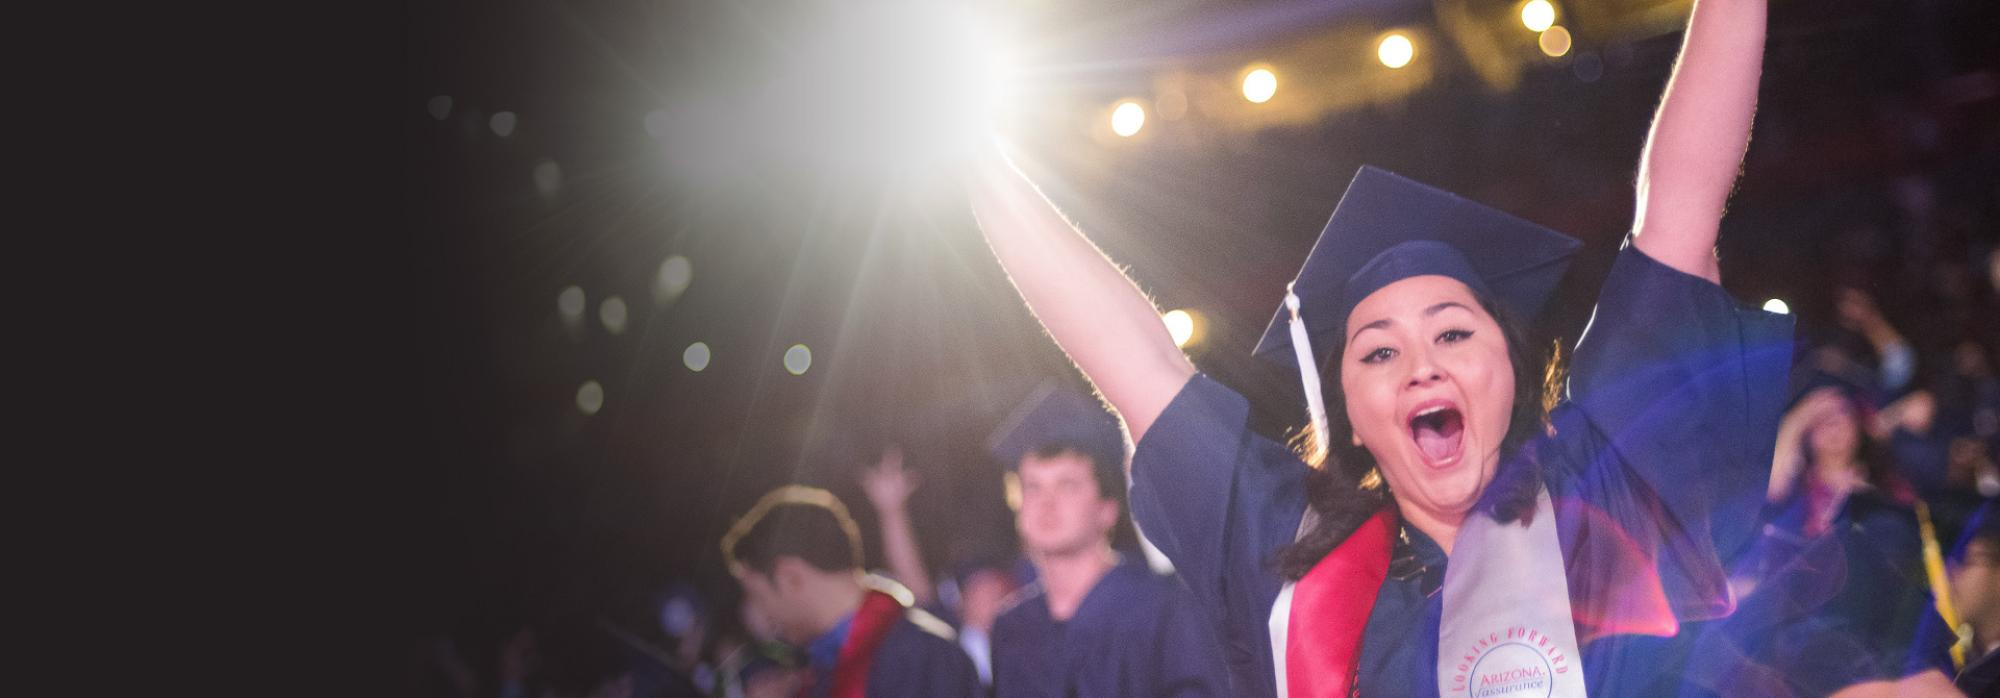 A graduate stands and raises their arms in excitement and joy